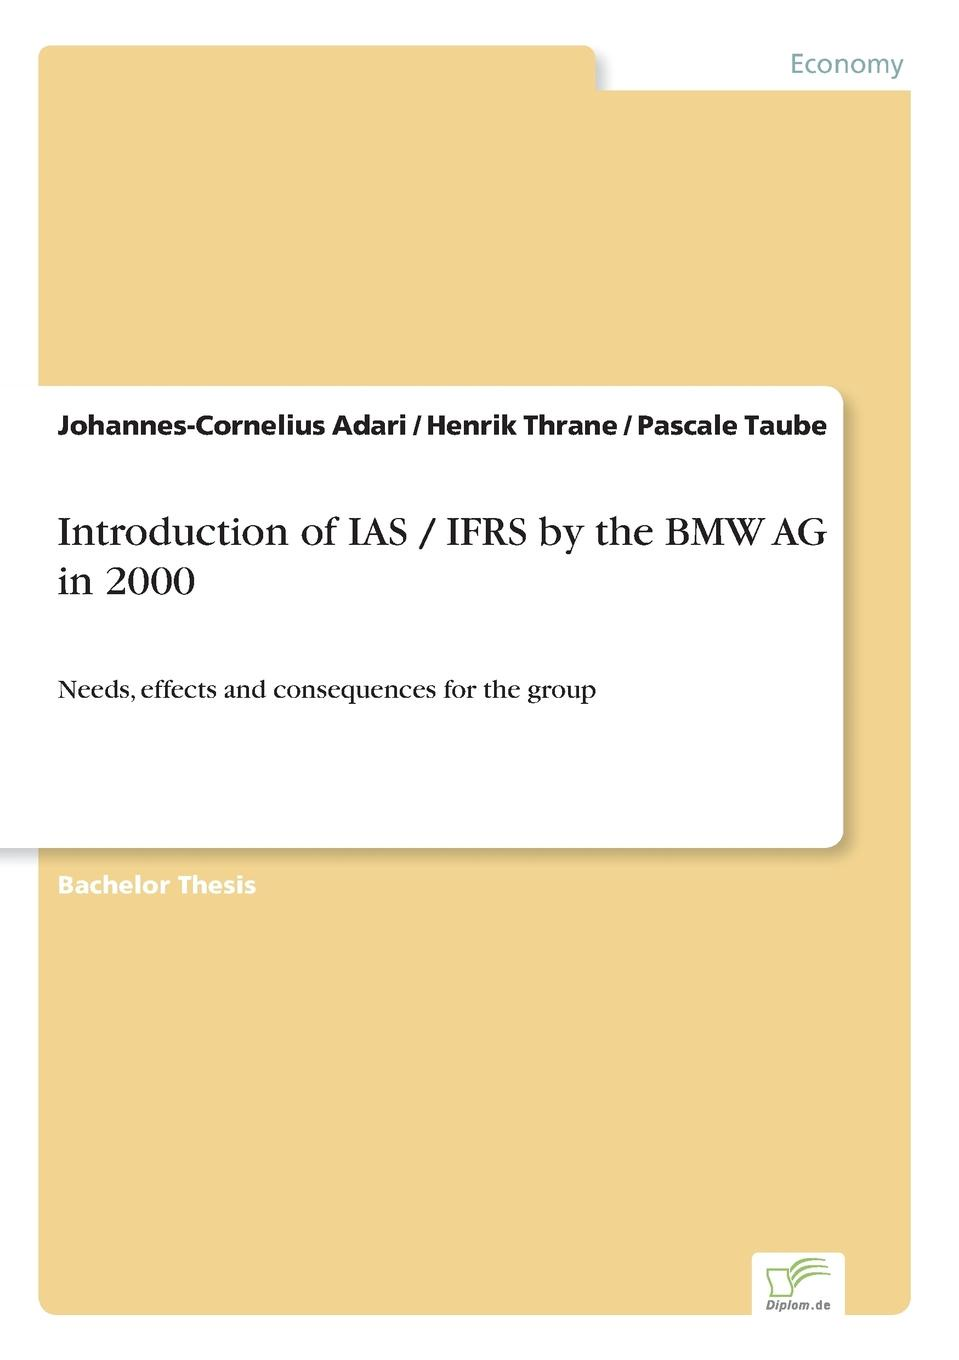 Johannes-Cornelius Adari, Henrik Thrane, Pascale Taube Introduction of IAS / IFRS by the BMW AG in 2000 free shipping 5pcs lots sgl160n60ufd g160n60ufd to 3p 100%new original ic in stock